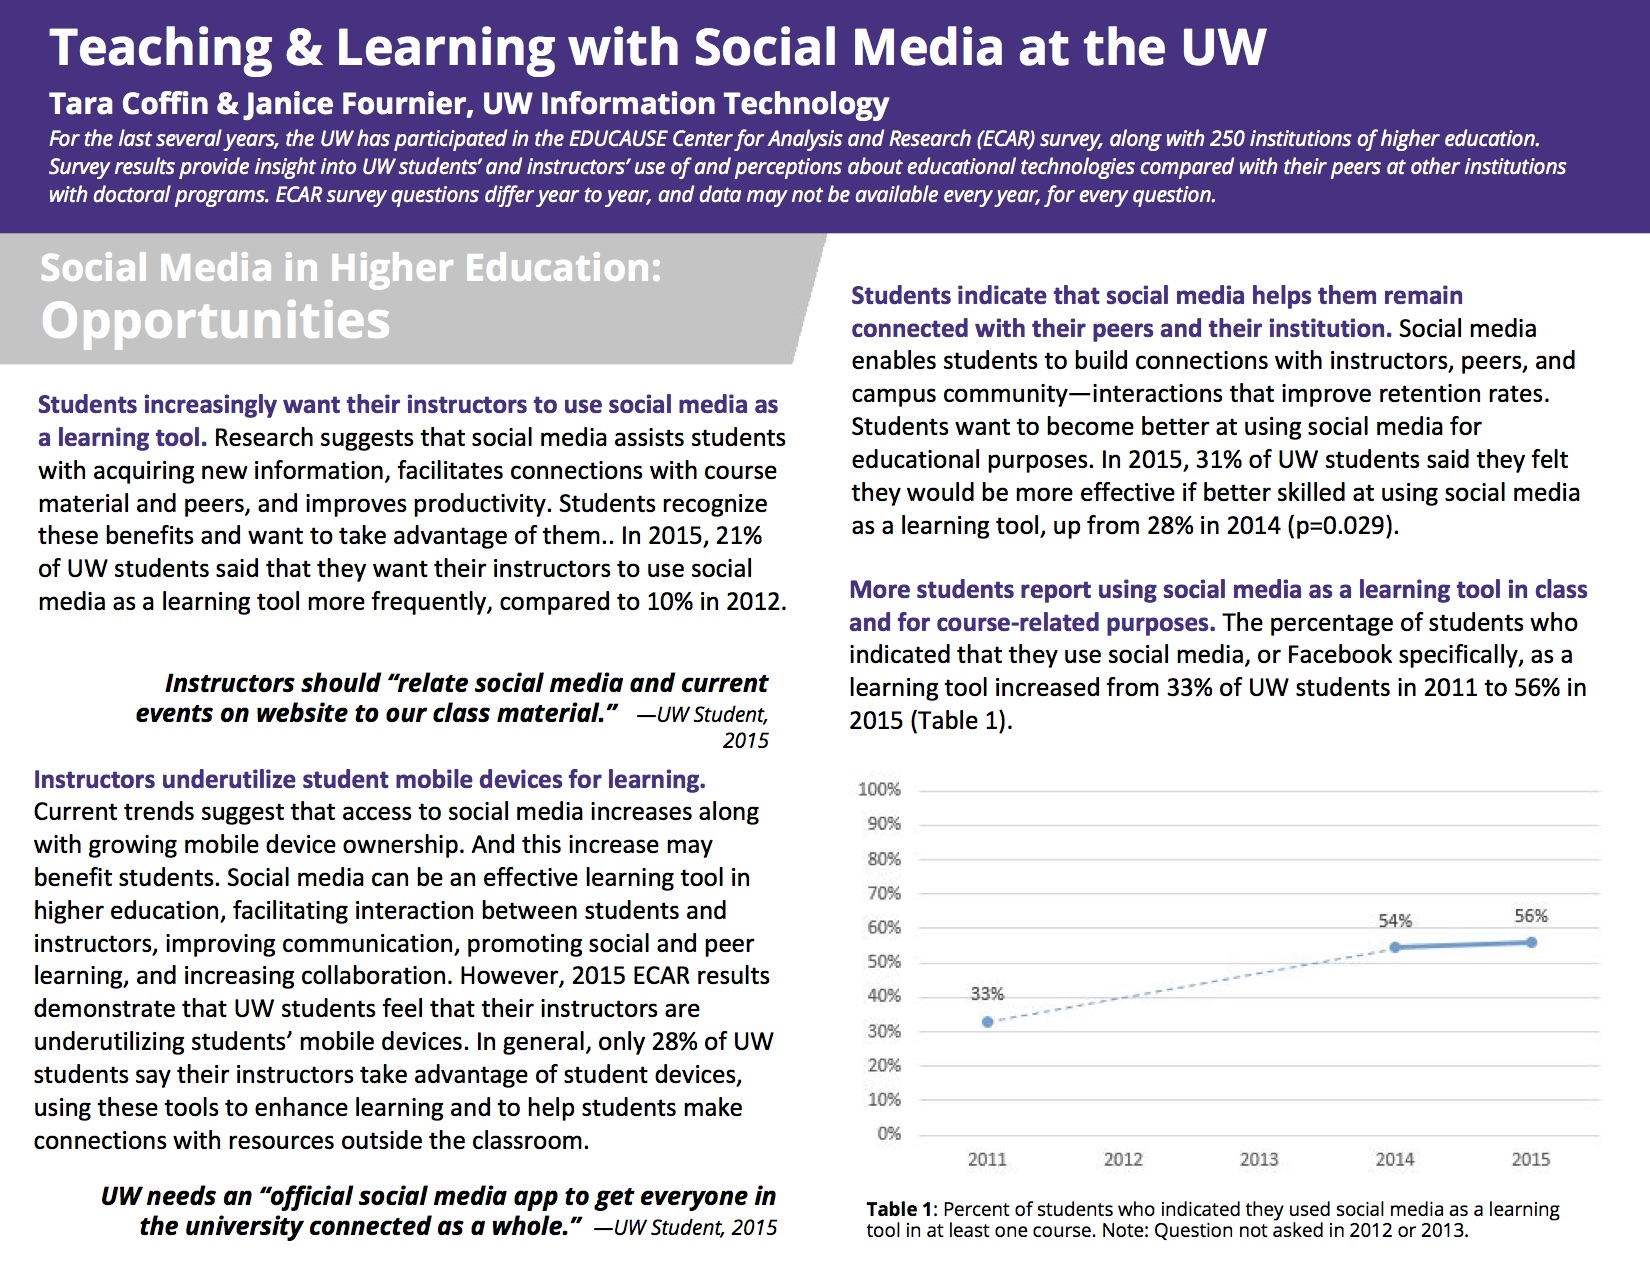 Social Media in the Classroom: Opportunities, Challenges